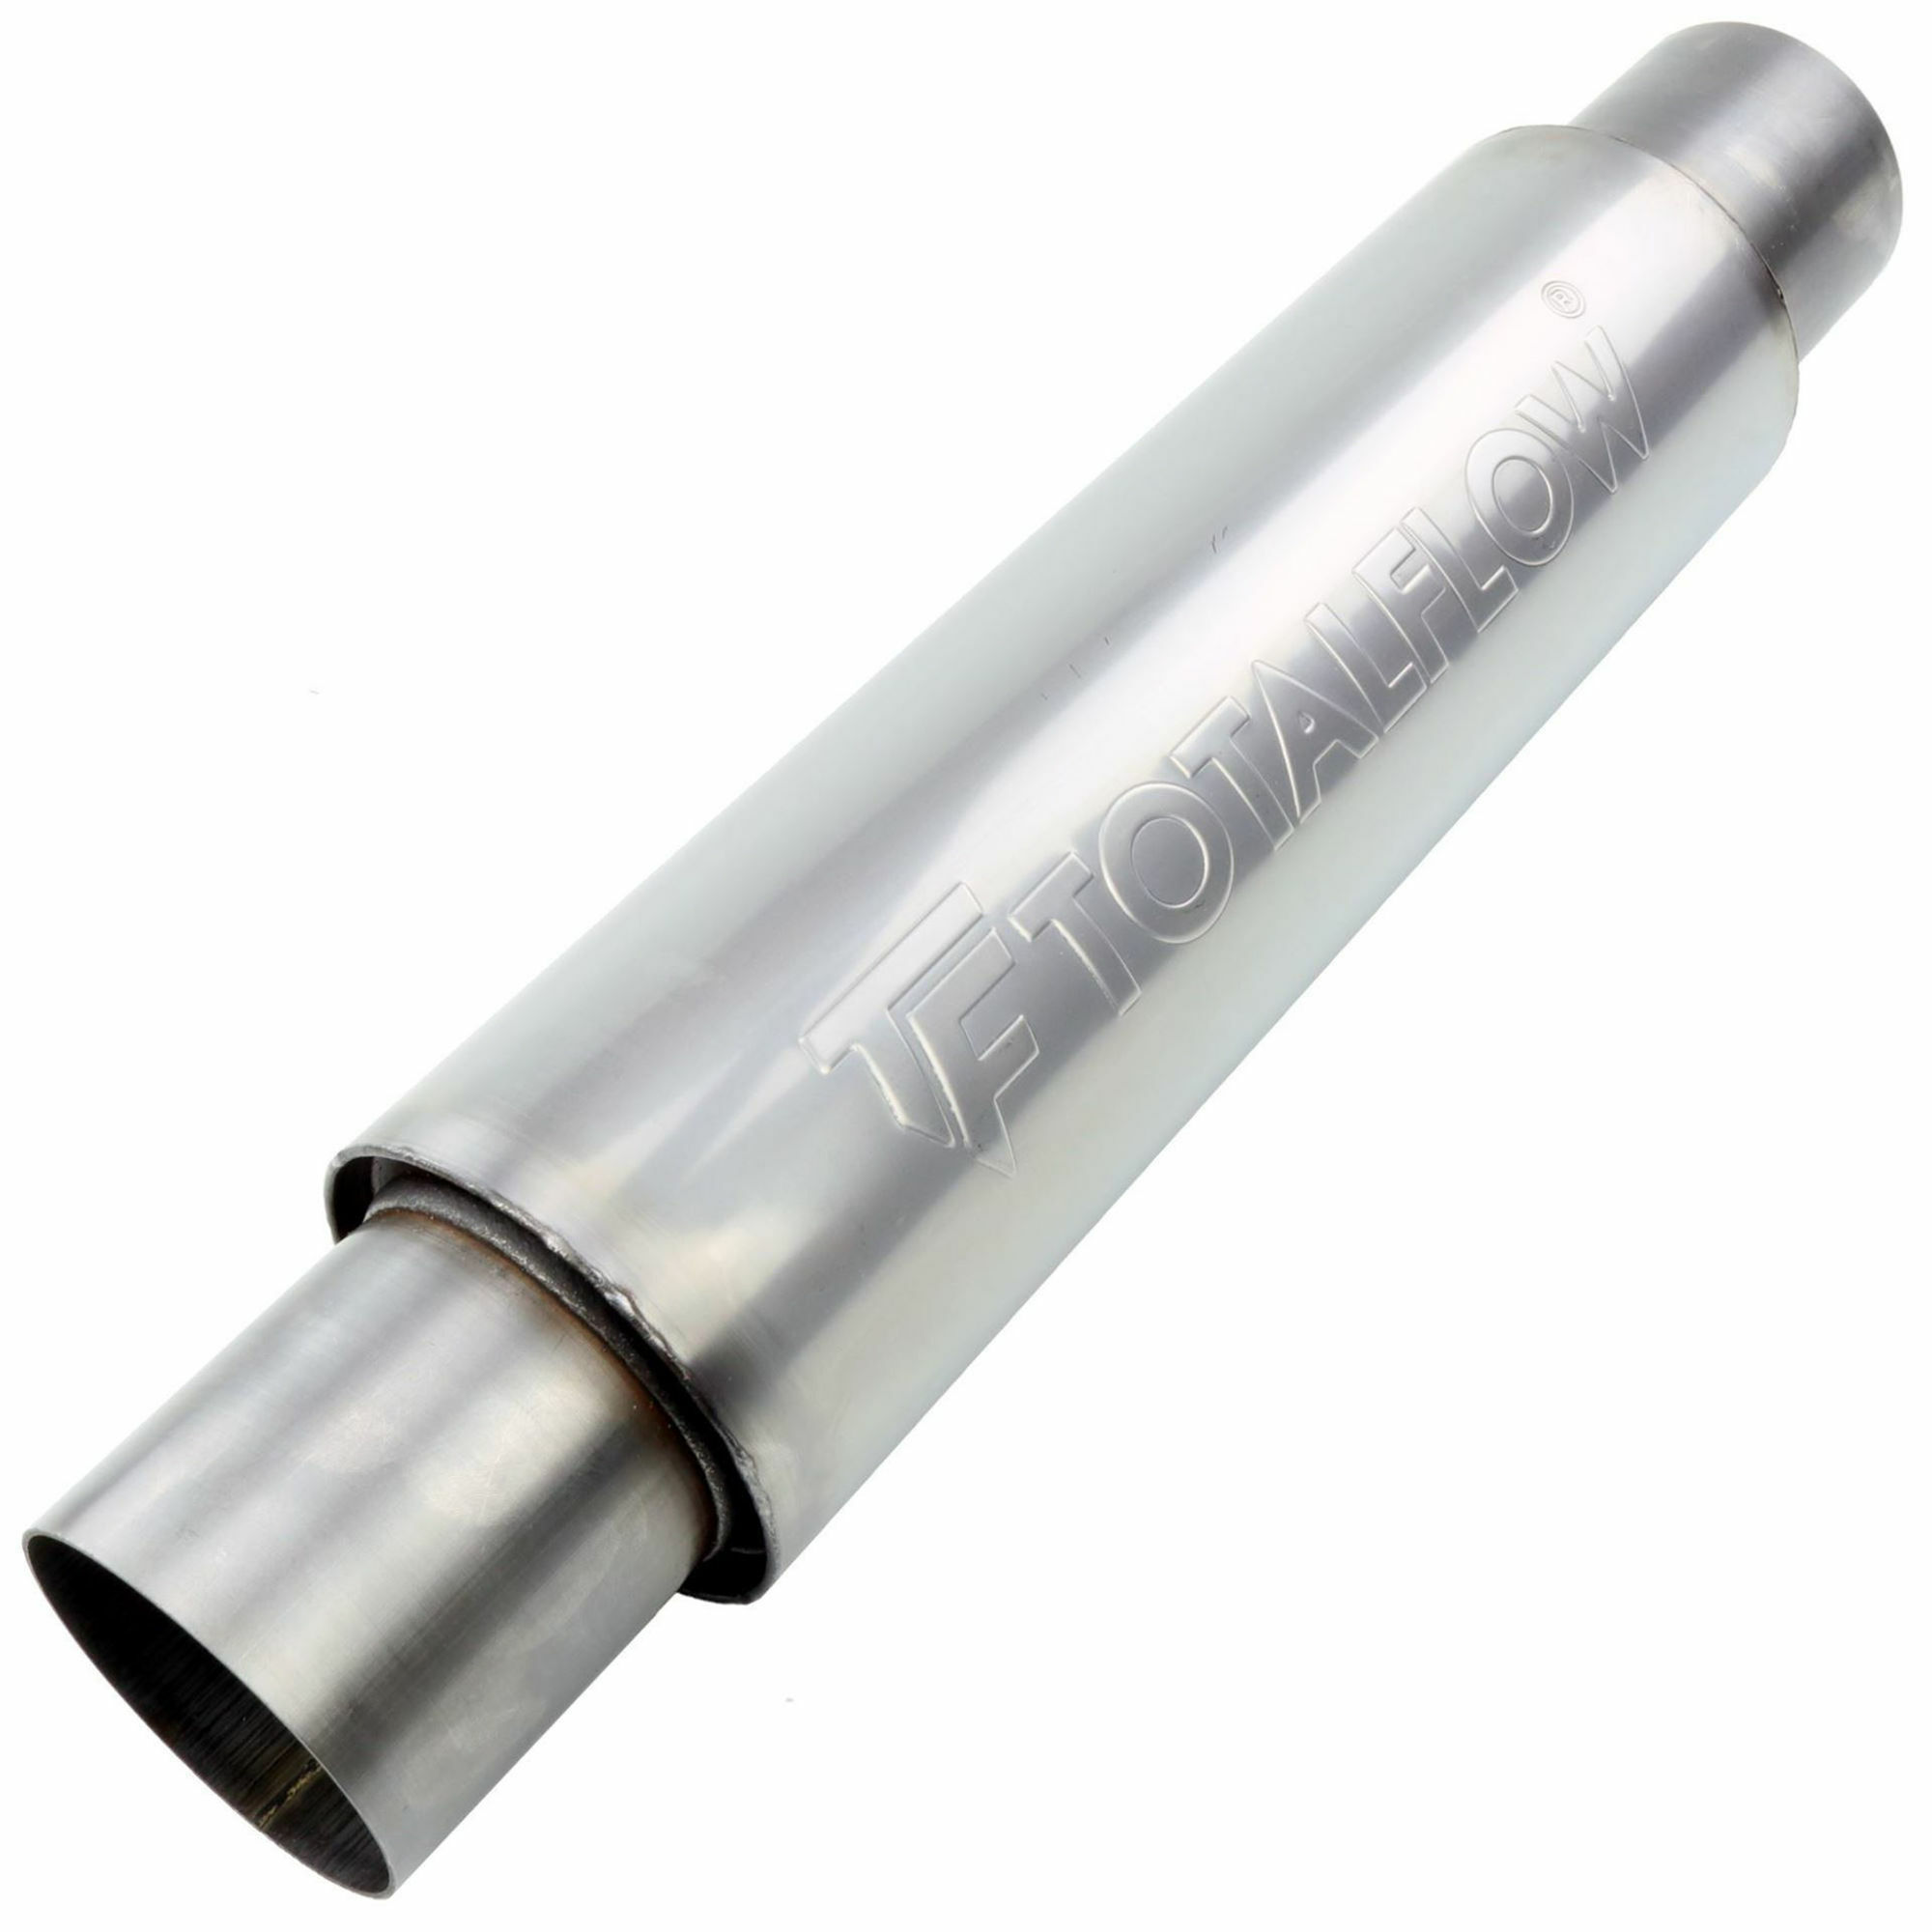 Picture of TOTALFLOW 22214 Straight Through Universal Exhaust Muffler - 2 Inch ID